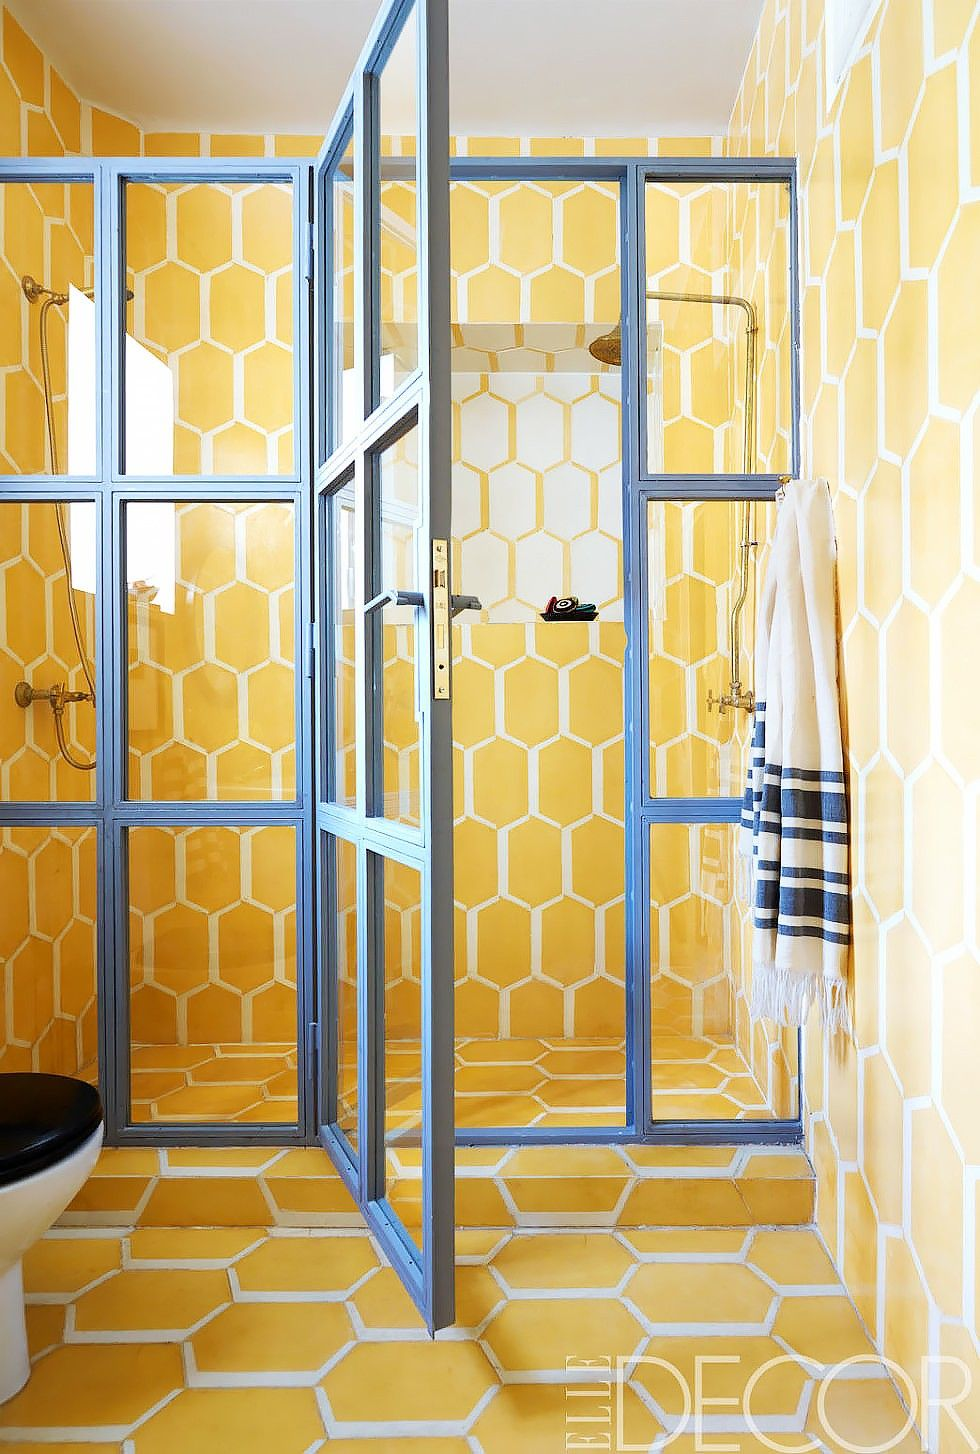 15 Tiny Bathrooms With Major Chic Factor | Shower doors, Tiny ...